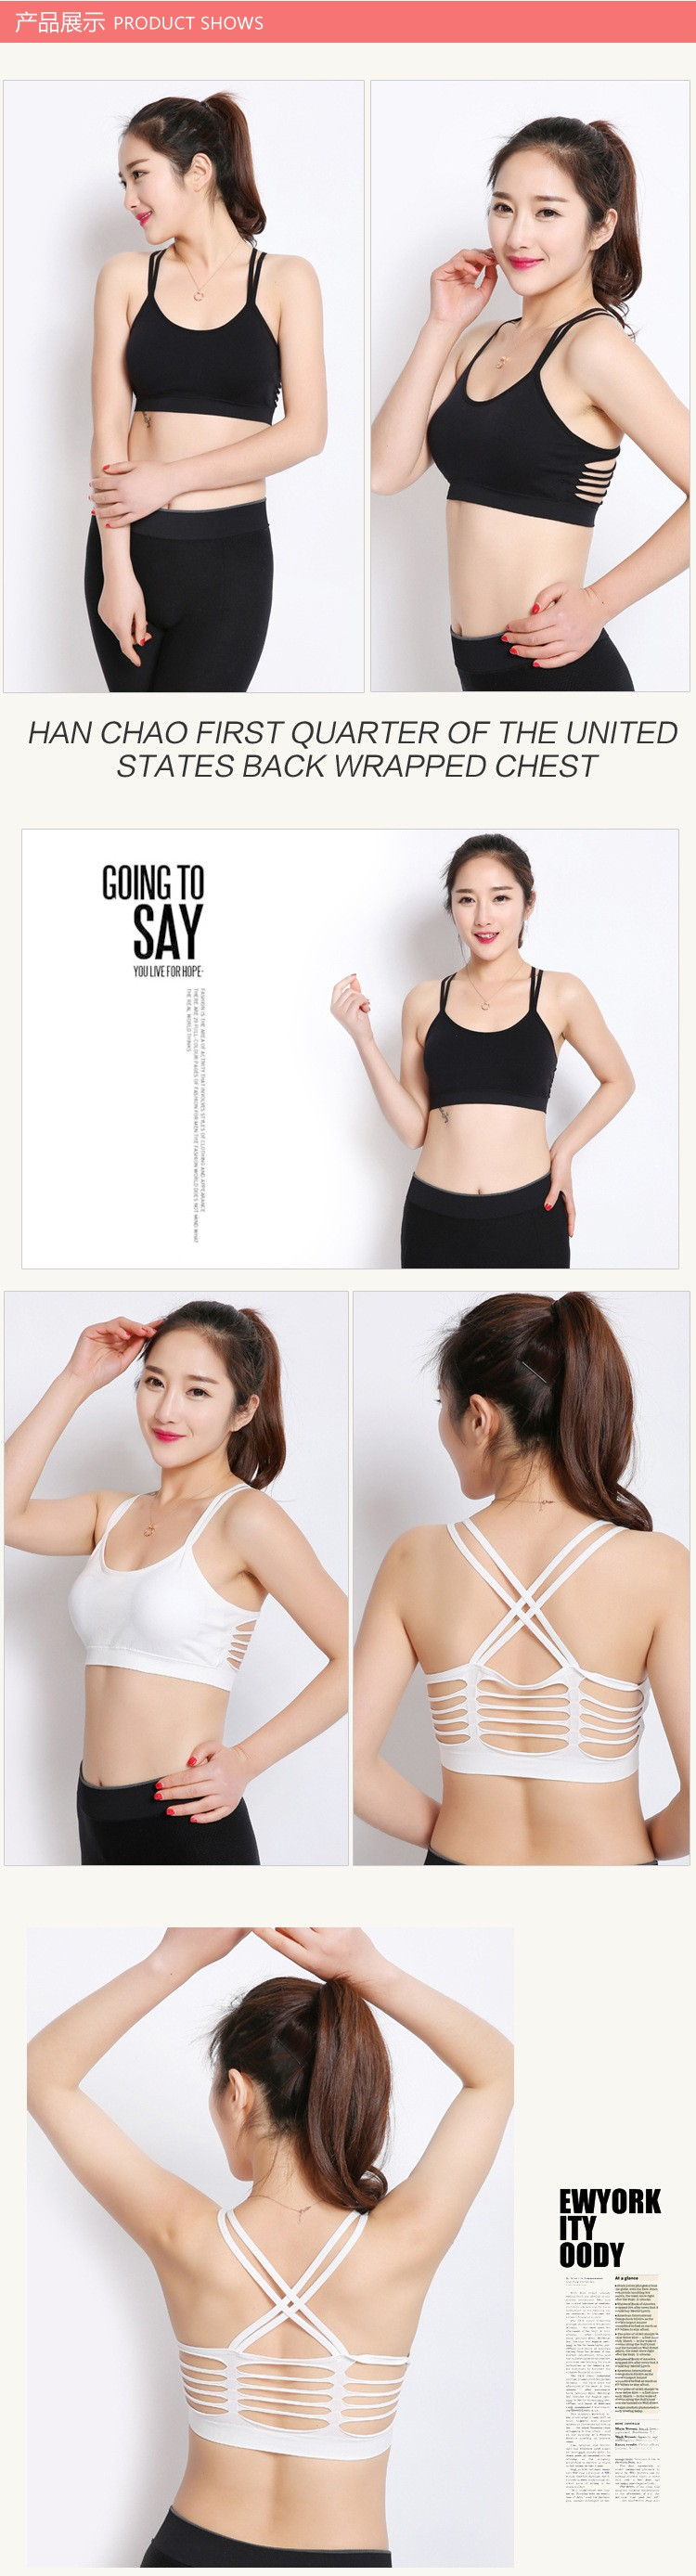 Women yoga bra with chest pad sleeveless shirt shockproof wireless sport fitness jogging clothing ropa deportiva